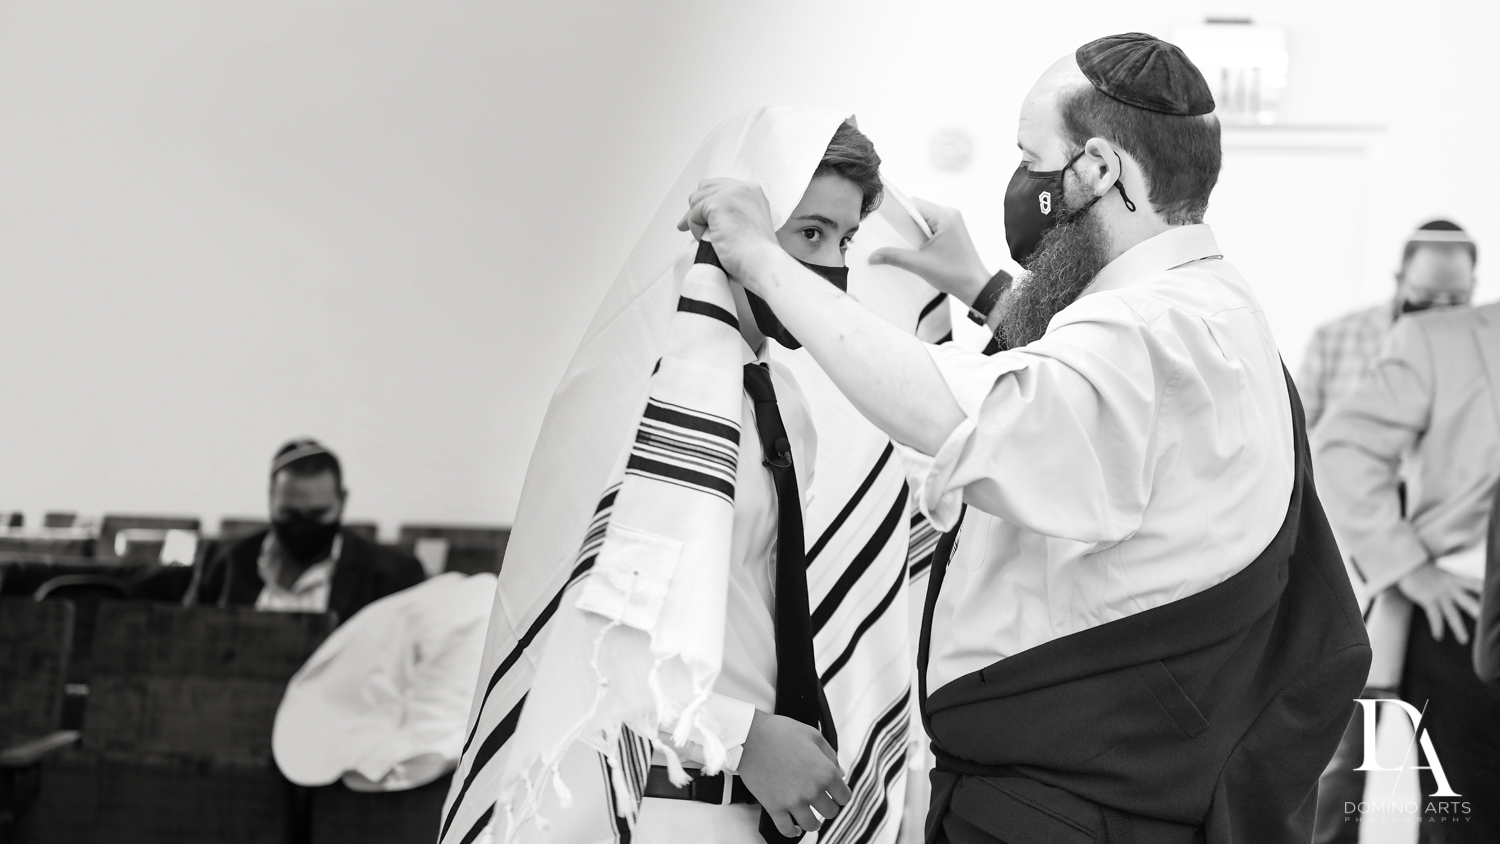 Jewish traditions at Bar Mitzvah Ceremony at Aventura Chabad by Domino Arts Photography